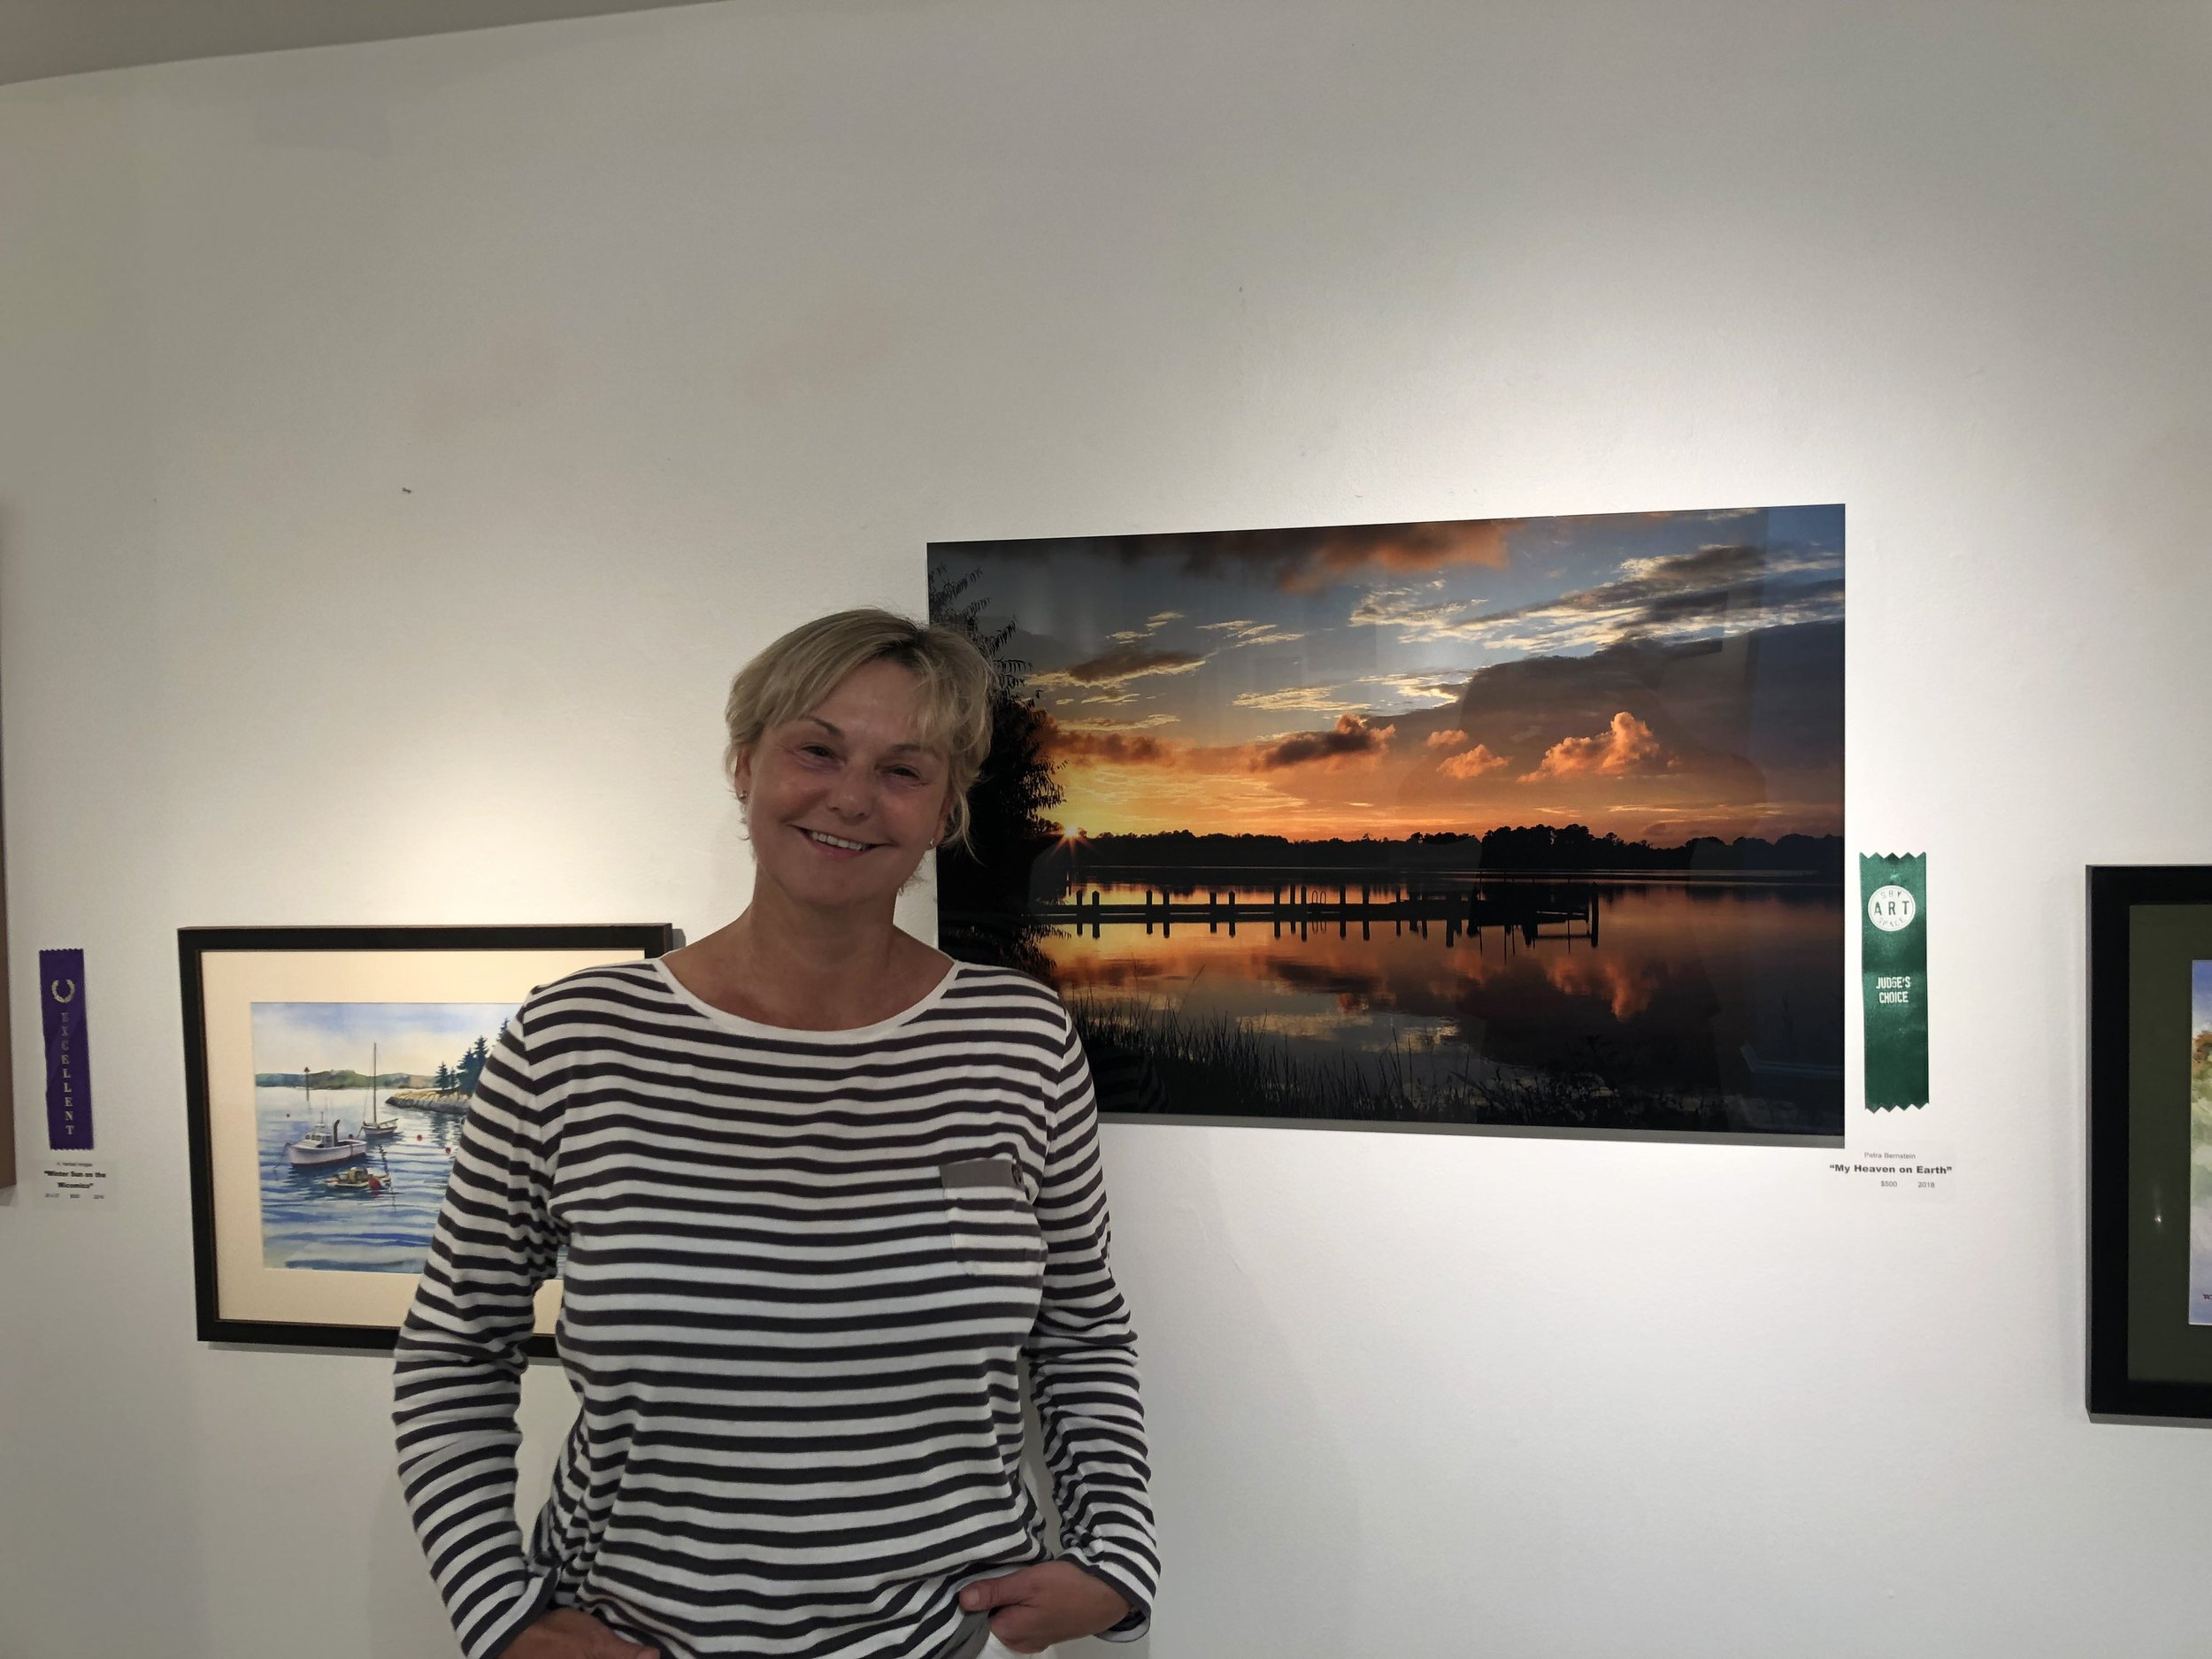 """Judge's Choice Award for """"My Heaven on Earth"""" at the SAS (Rivers and Oceans Exhibition) July/August in Salisbury, MD"""